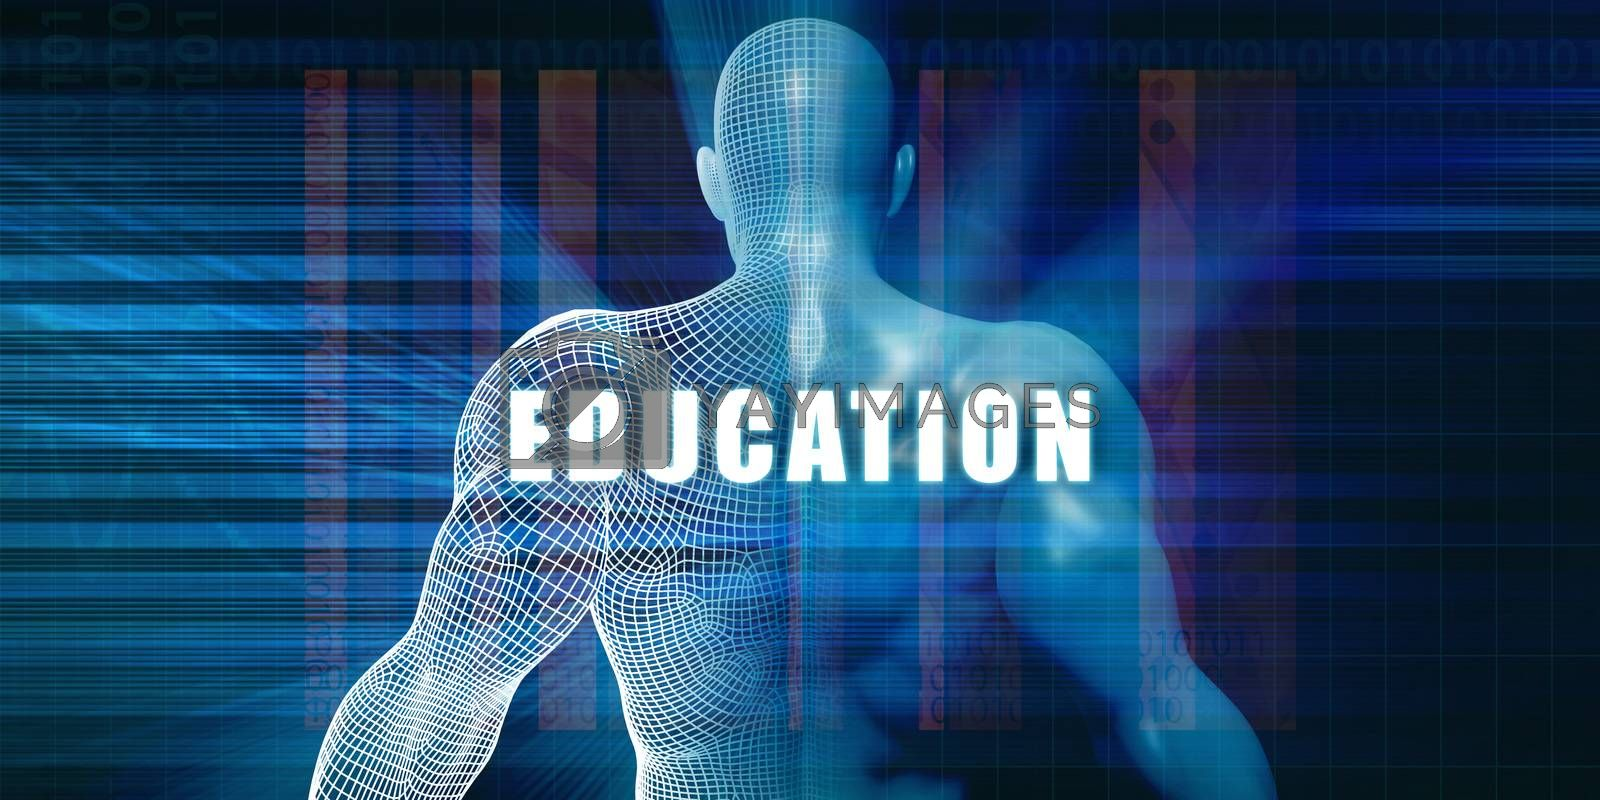 Education as a Futuristic Concept Abstract Background